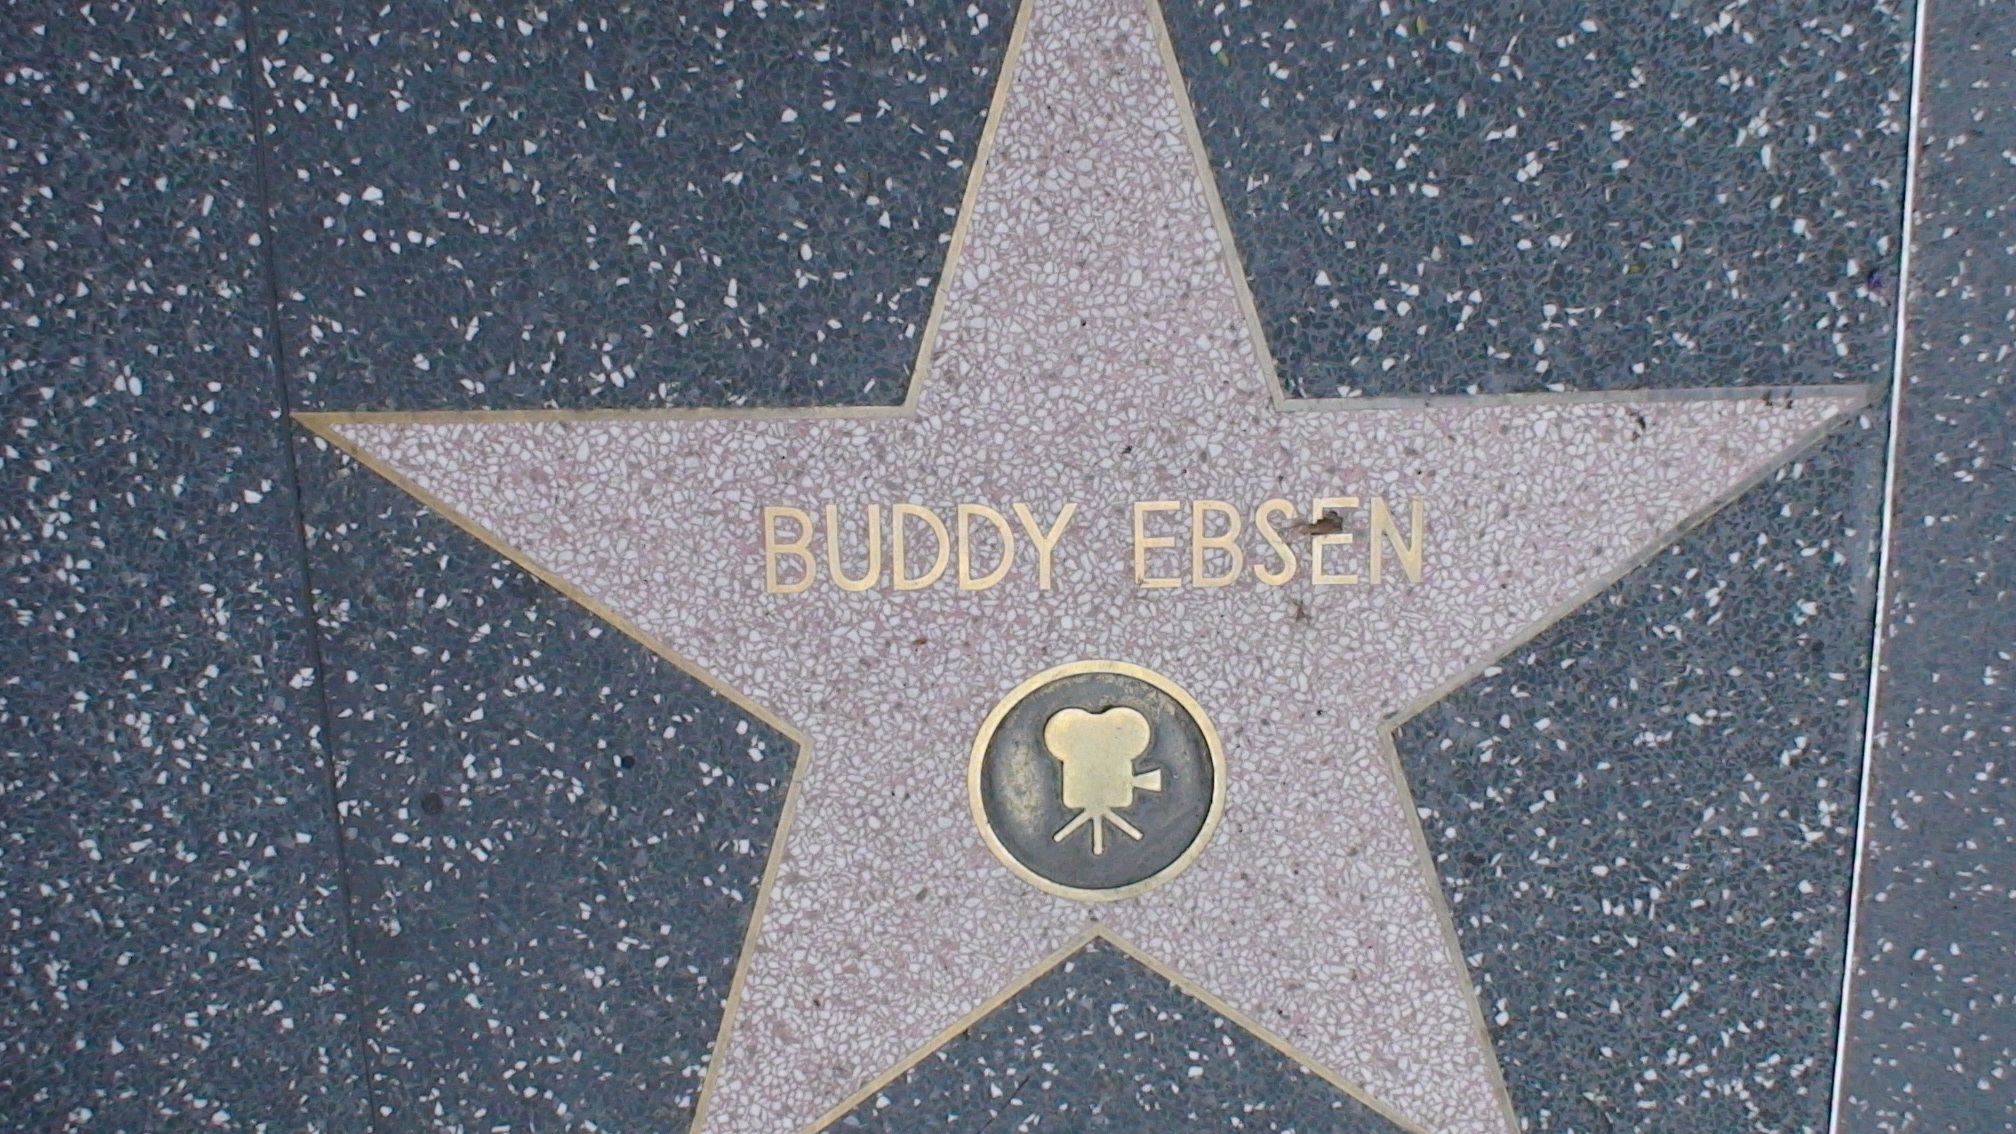 Buddy Ebsen's quote